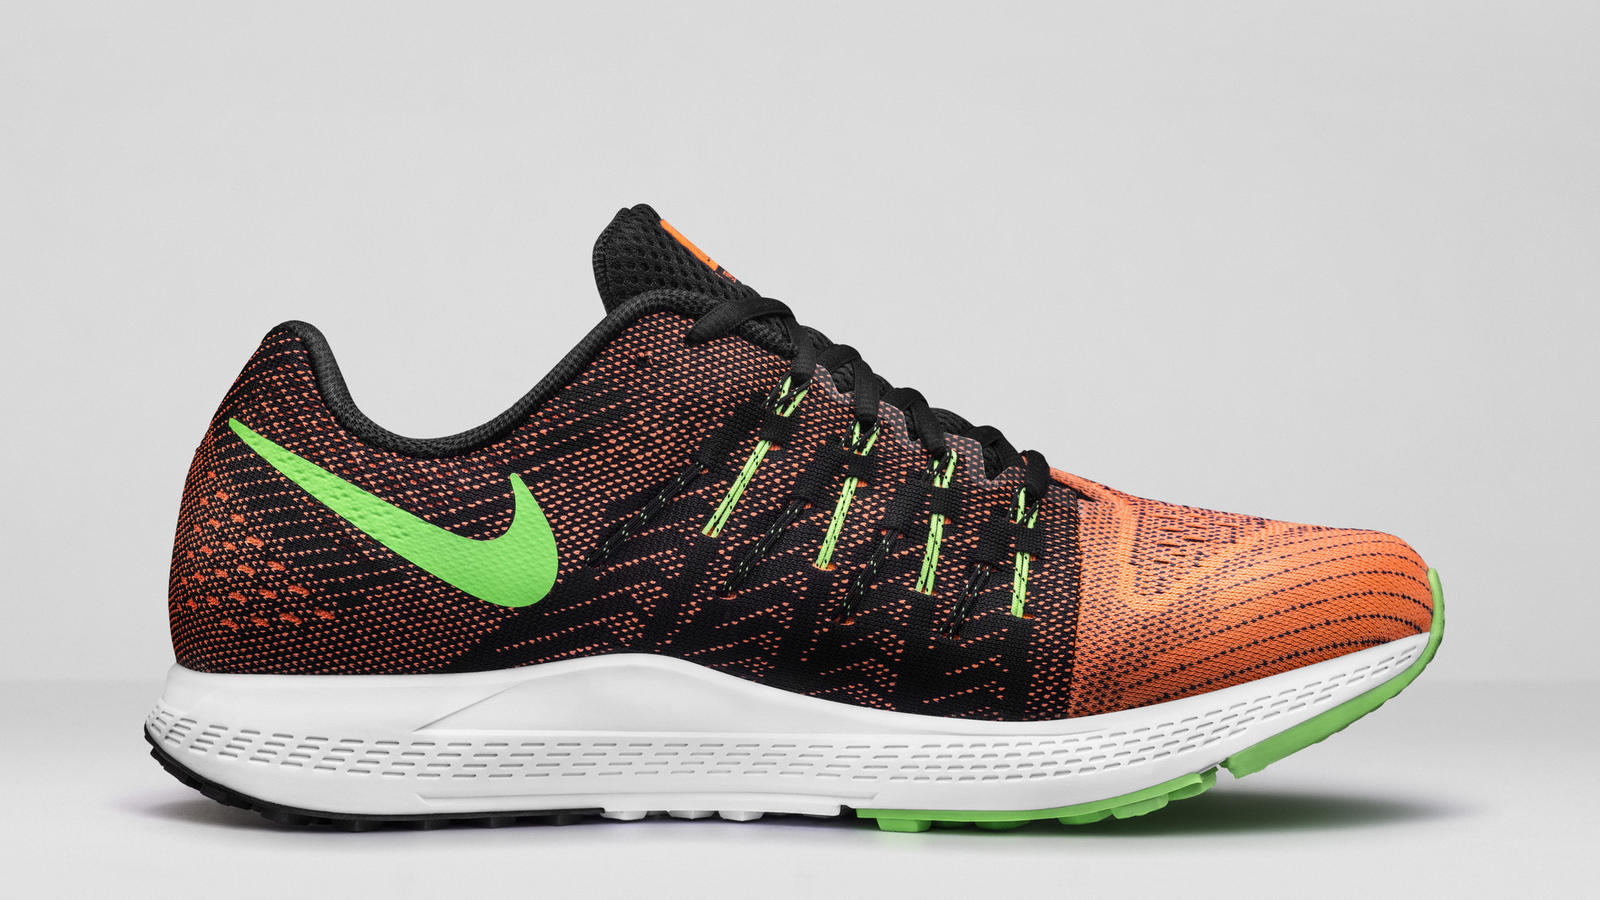 Arrepentimiento grava a pesar de  Nike Air Zoom Elite 8: Low, Sleek, Fast and Light - Nike News